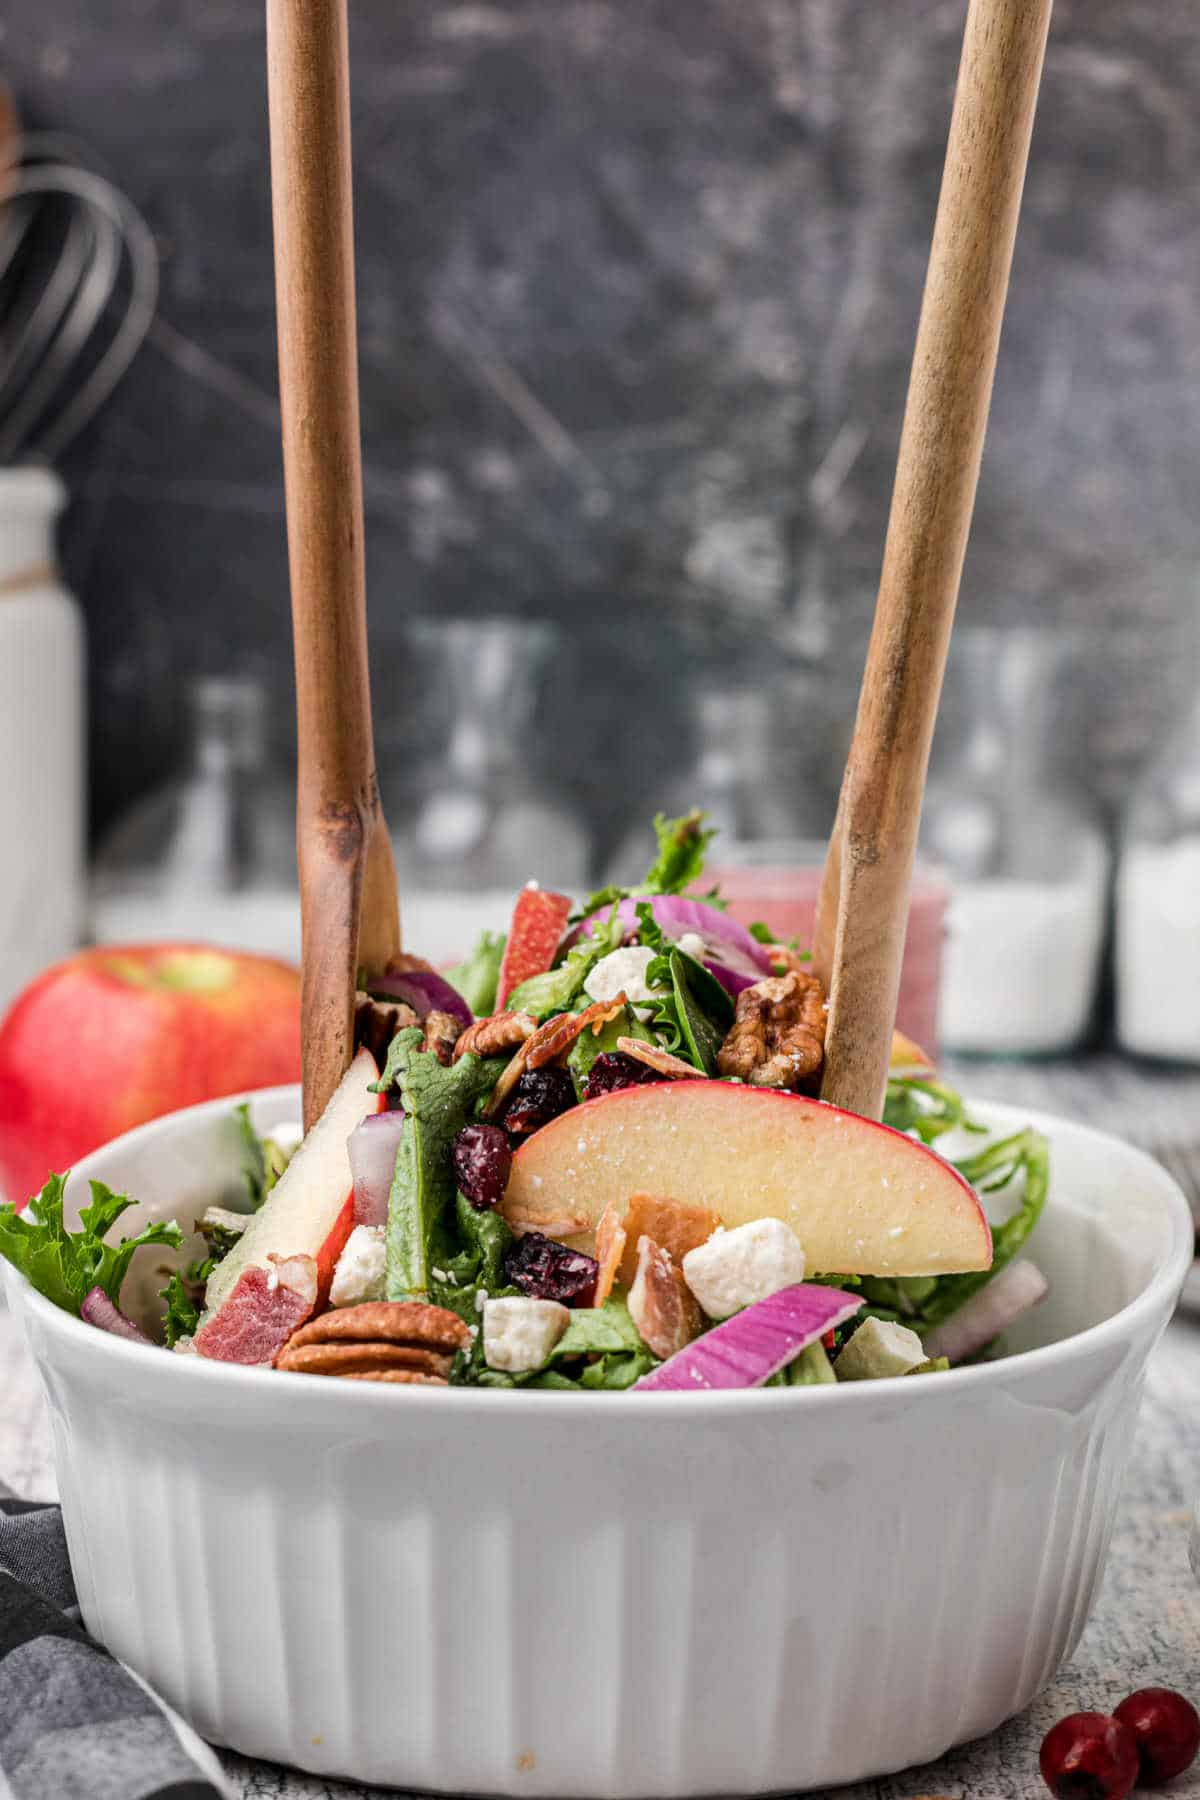 a wooden set of salad fork and spoon digging into a salad bowl